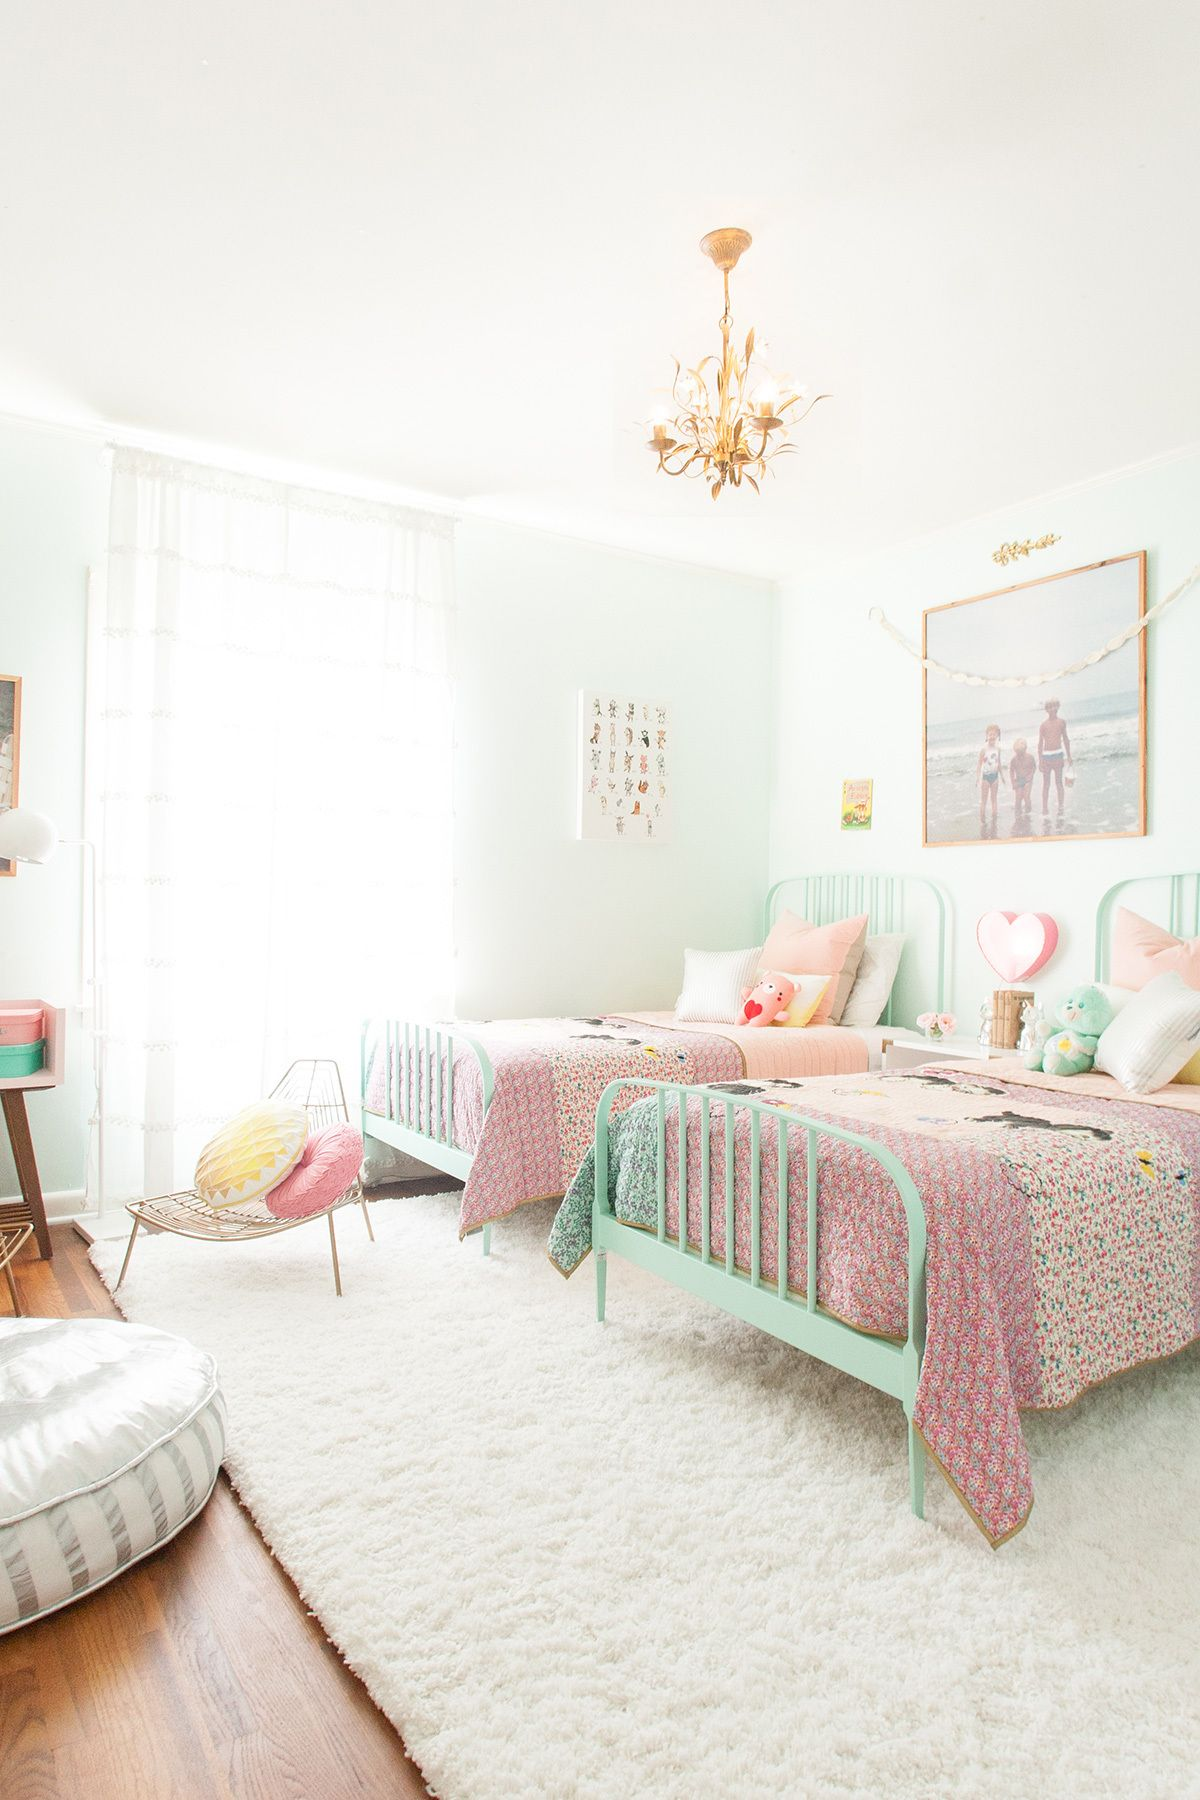 Ideas Decorar Habitacion Juvenil Chica Shared Room Inspiration With The Land Of Nod For My Two Girls